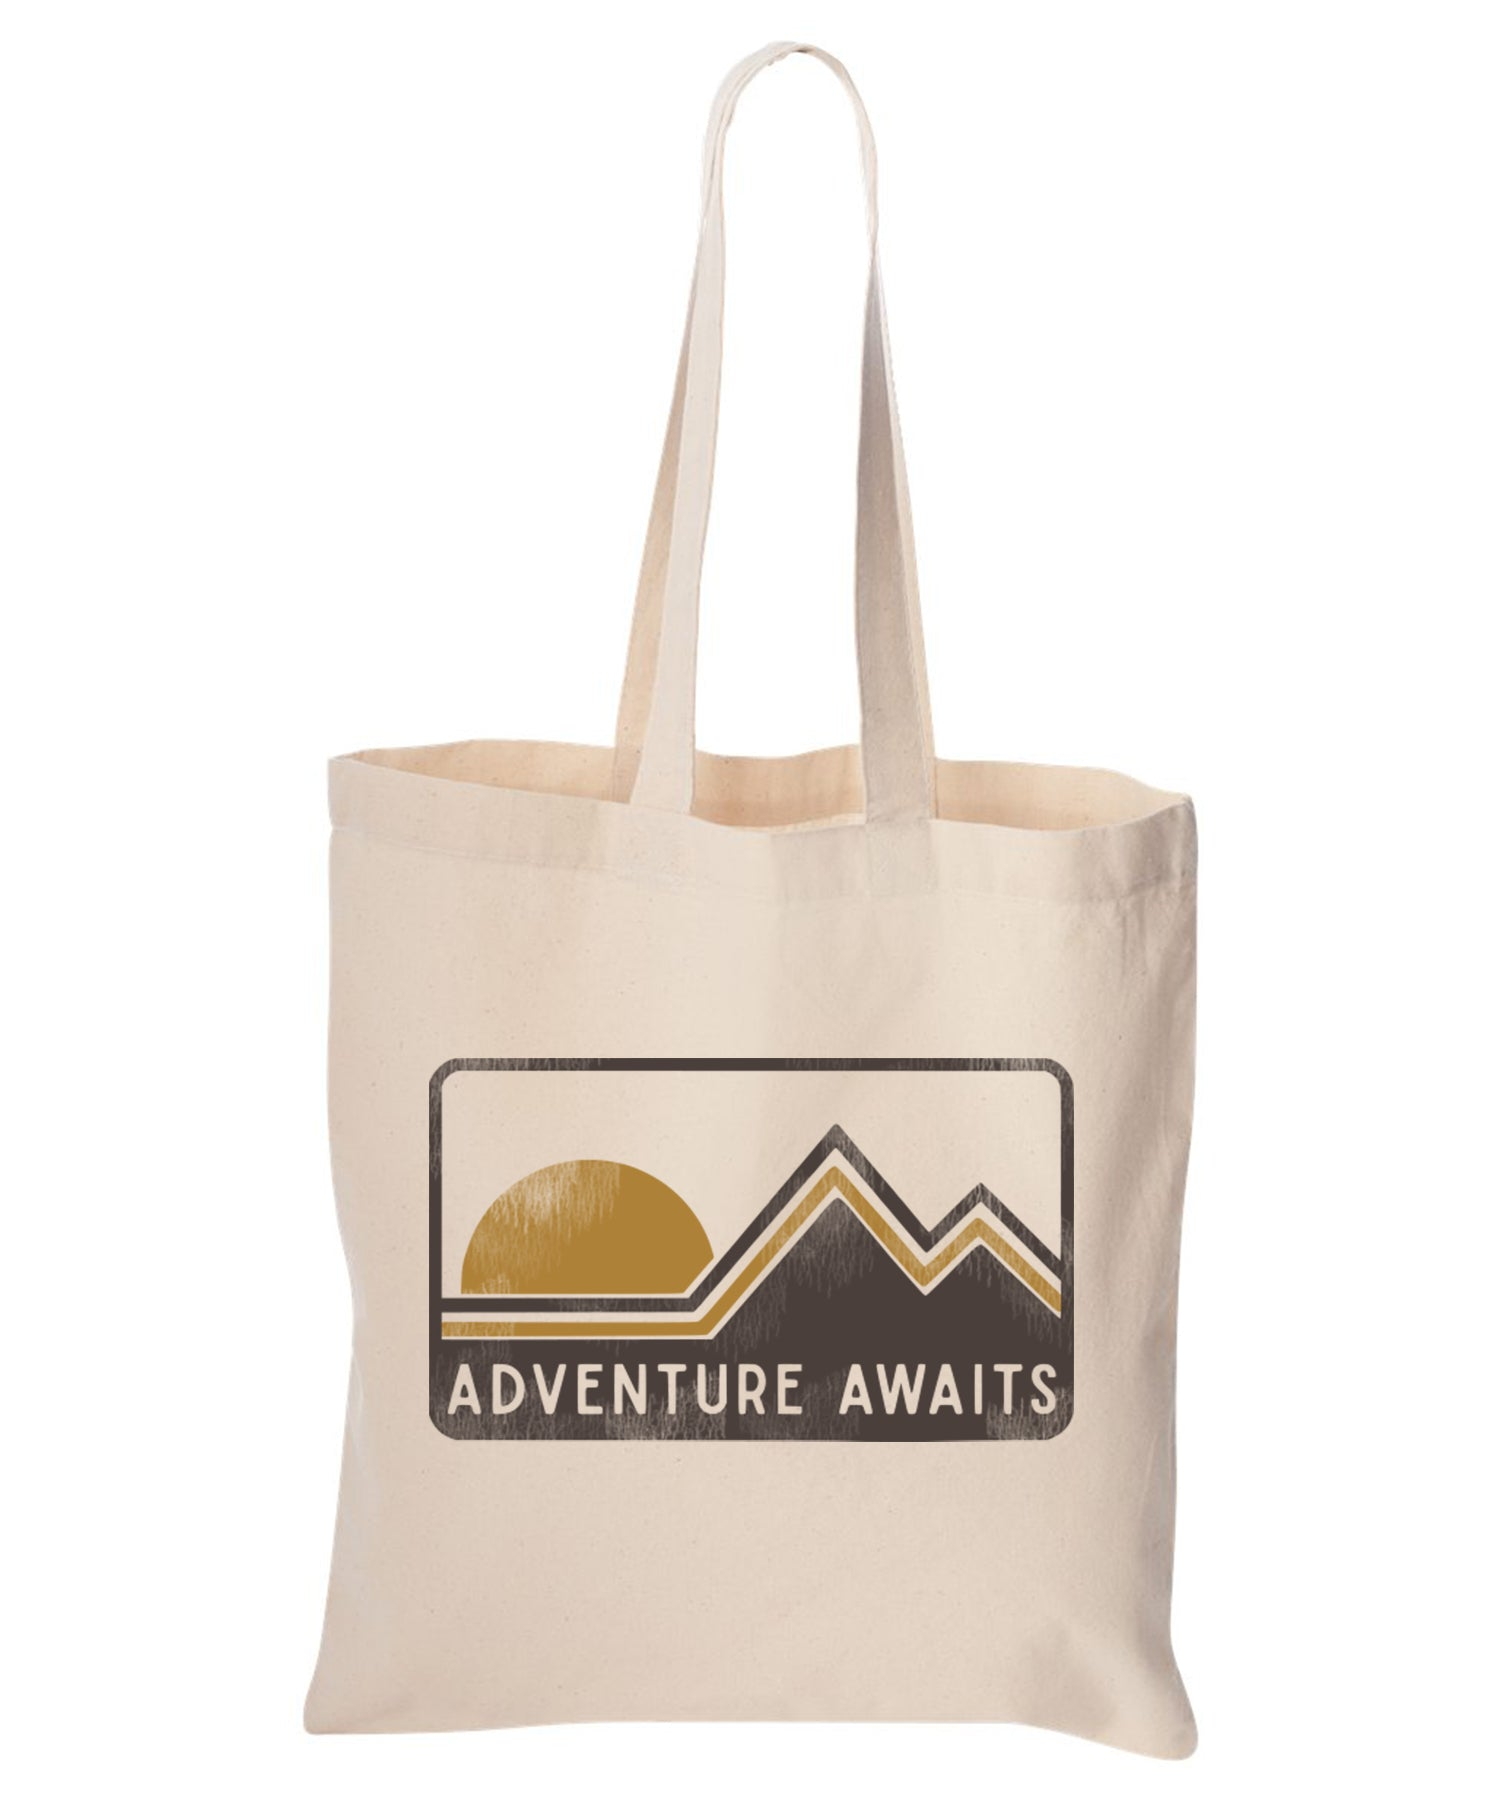 Adventure Awaits Cotton Canvas Tote